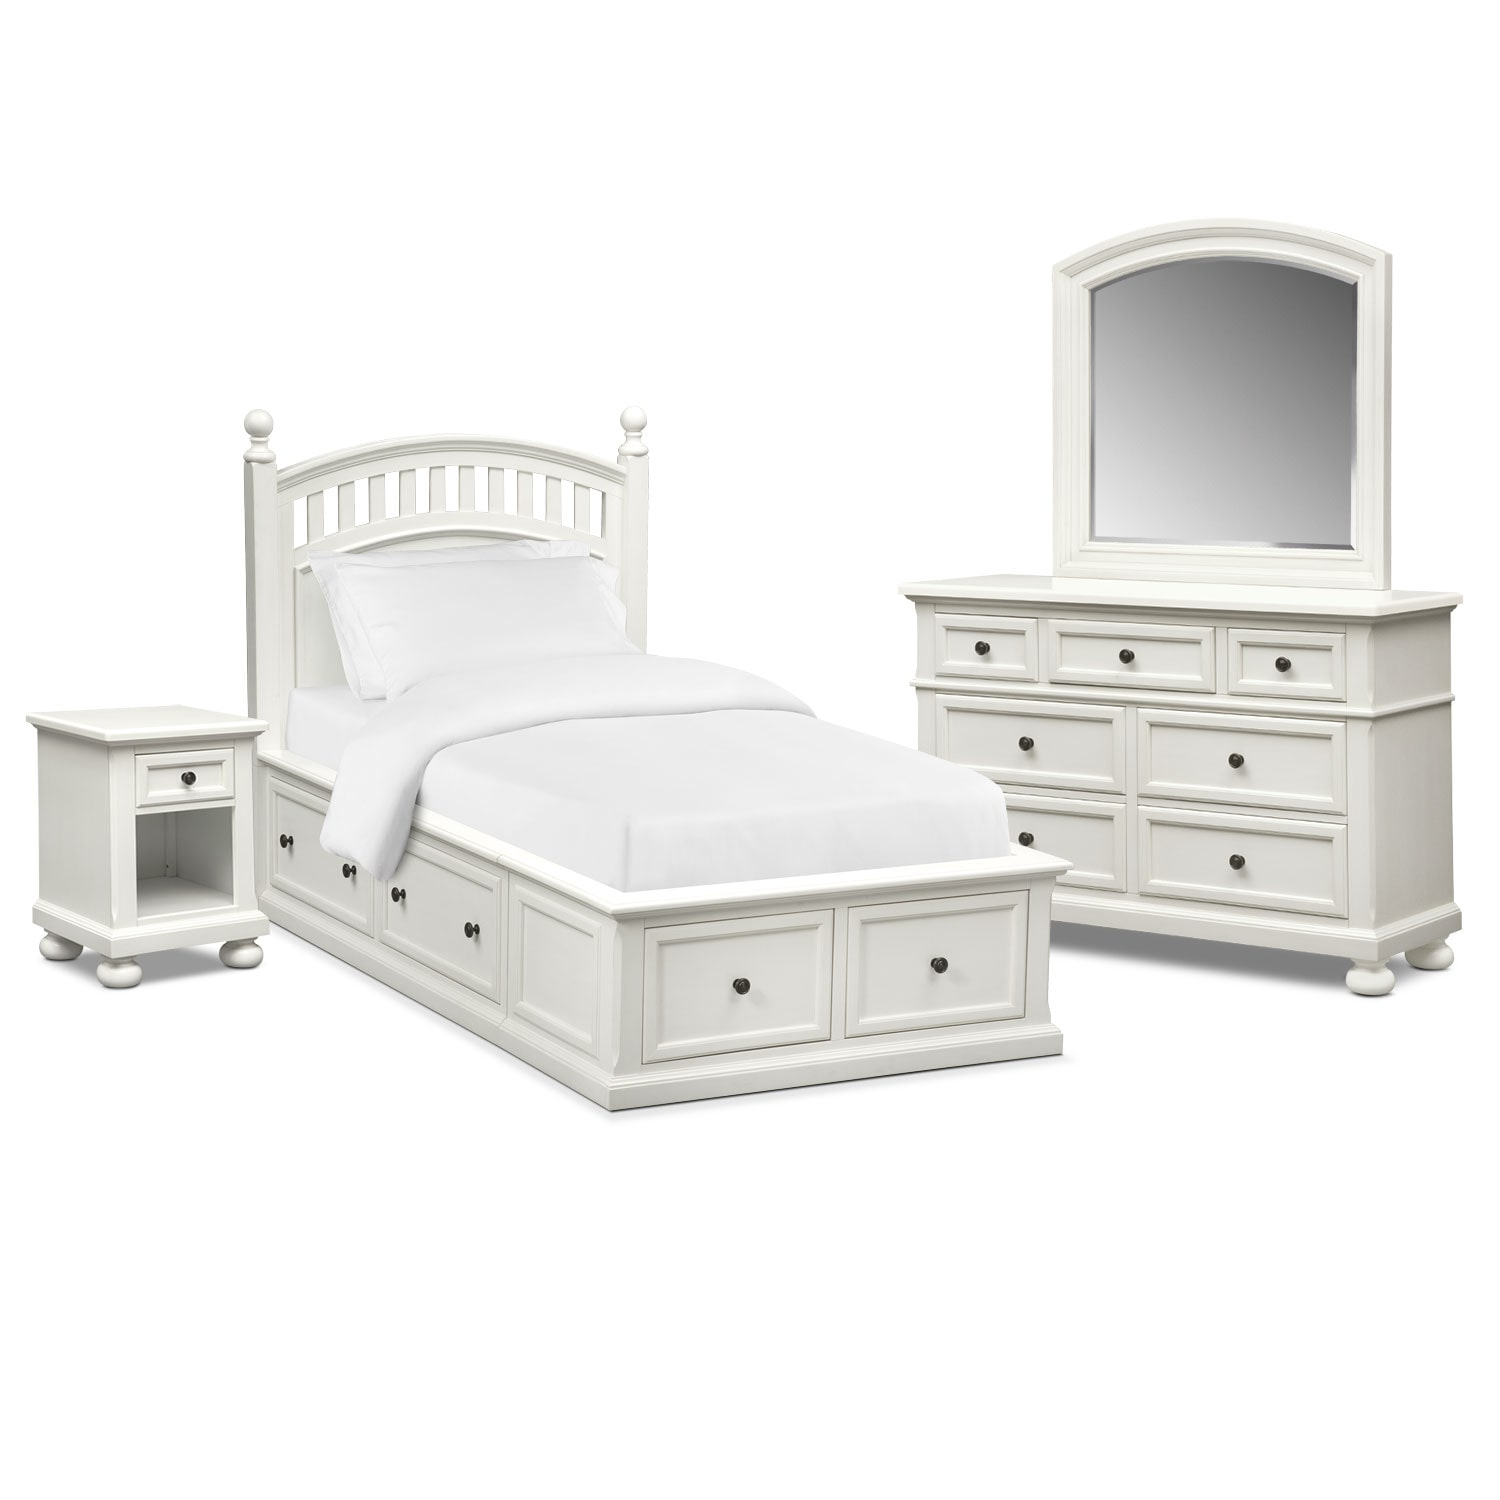 Bedroom Furniture - Hanover Youth 6-Piece Twin Poster Bedroom Set with Storage - White